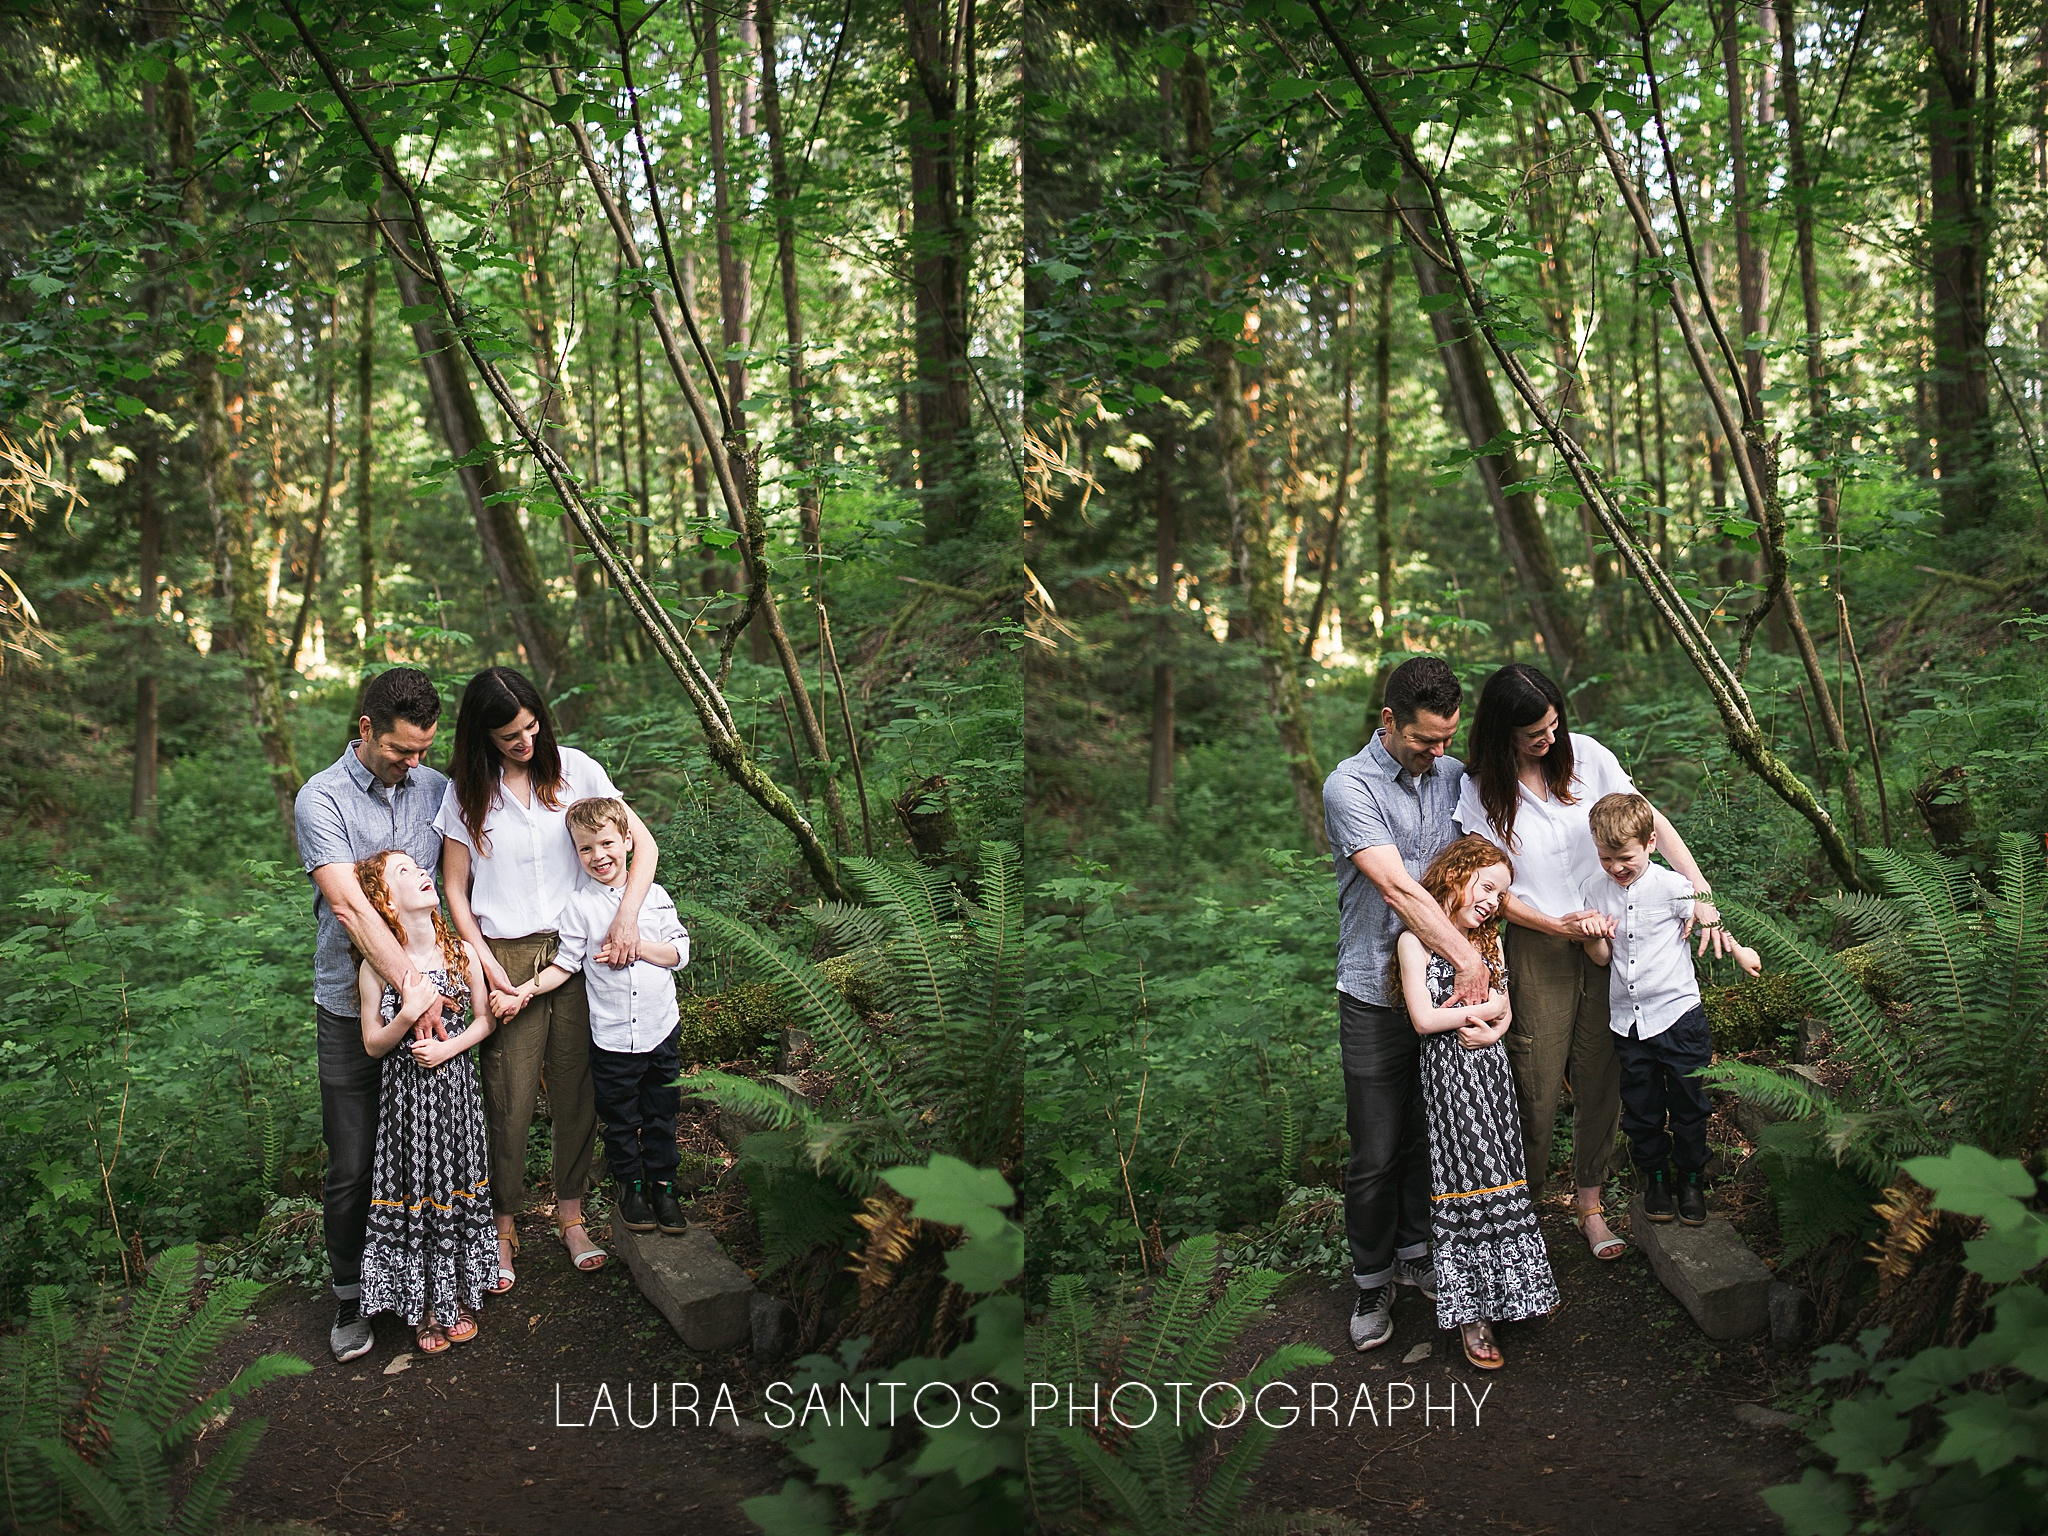 Laura Santos Photography Portland Oregon Family Photographer_0972.jpg